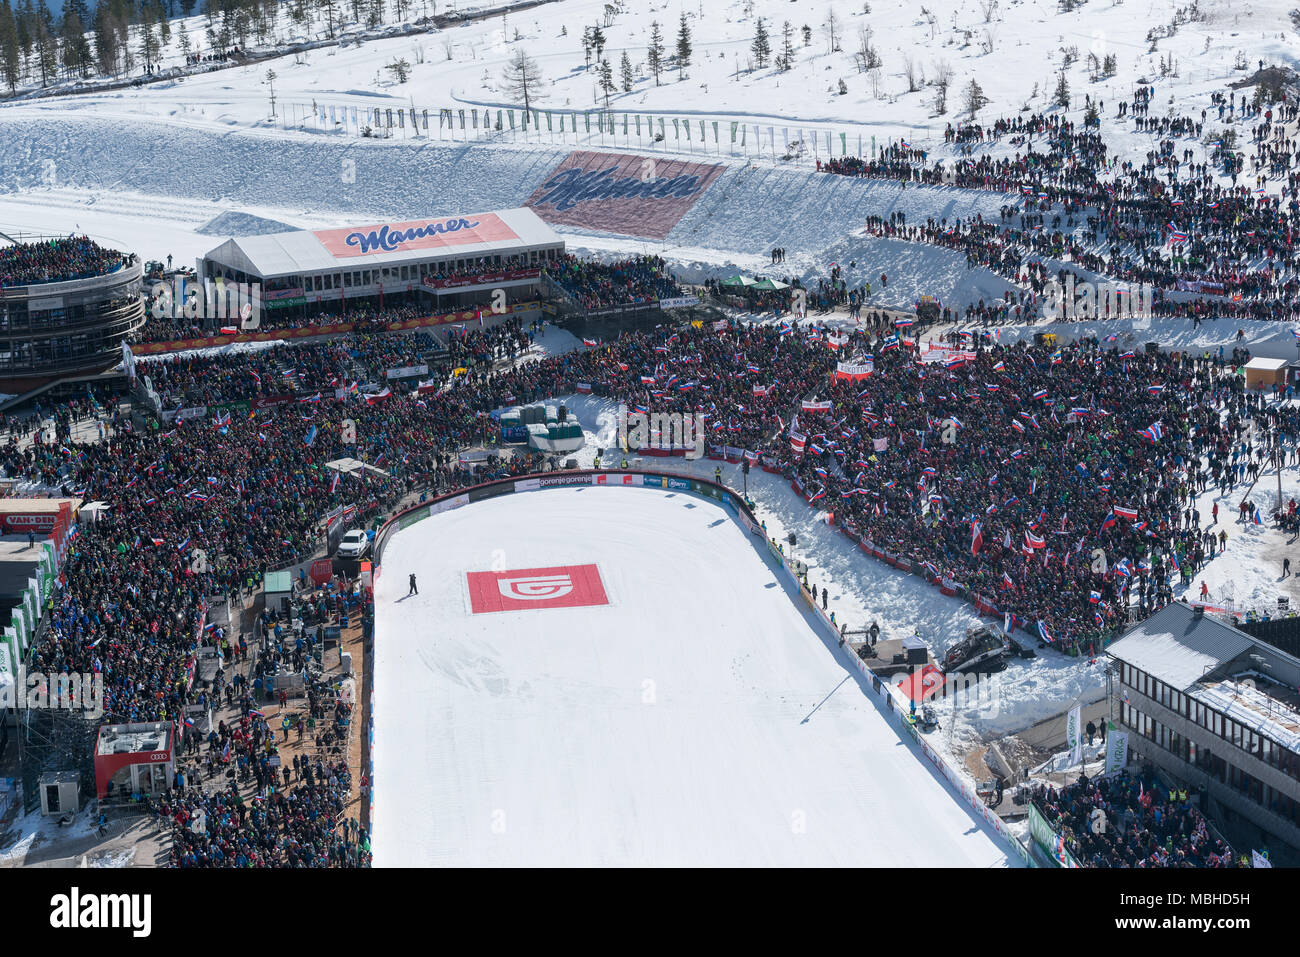 PLANICA, SLOVENIA - MARCH 24 2018 : Fis World Cup Ski Jumping Final - fans - Stock Image